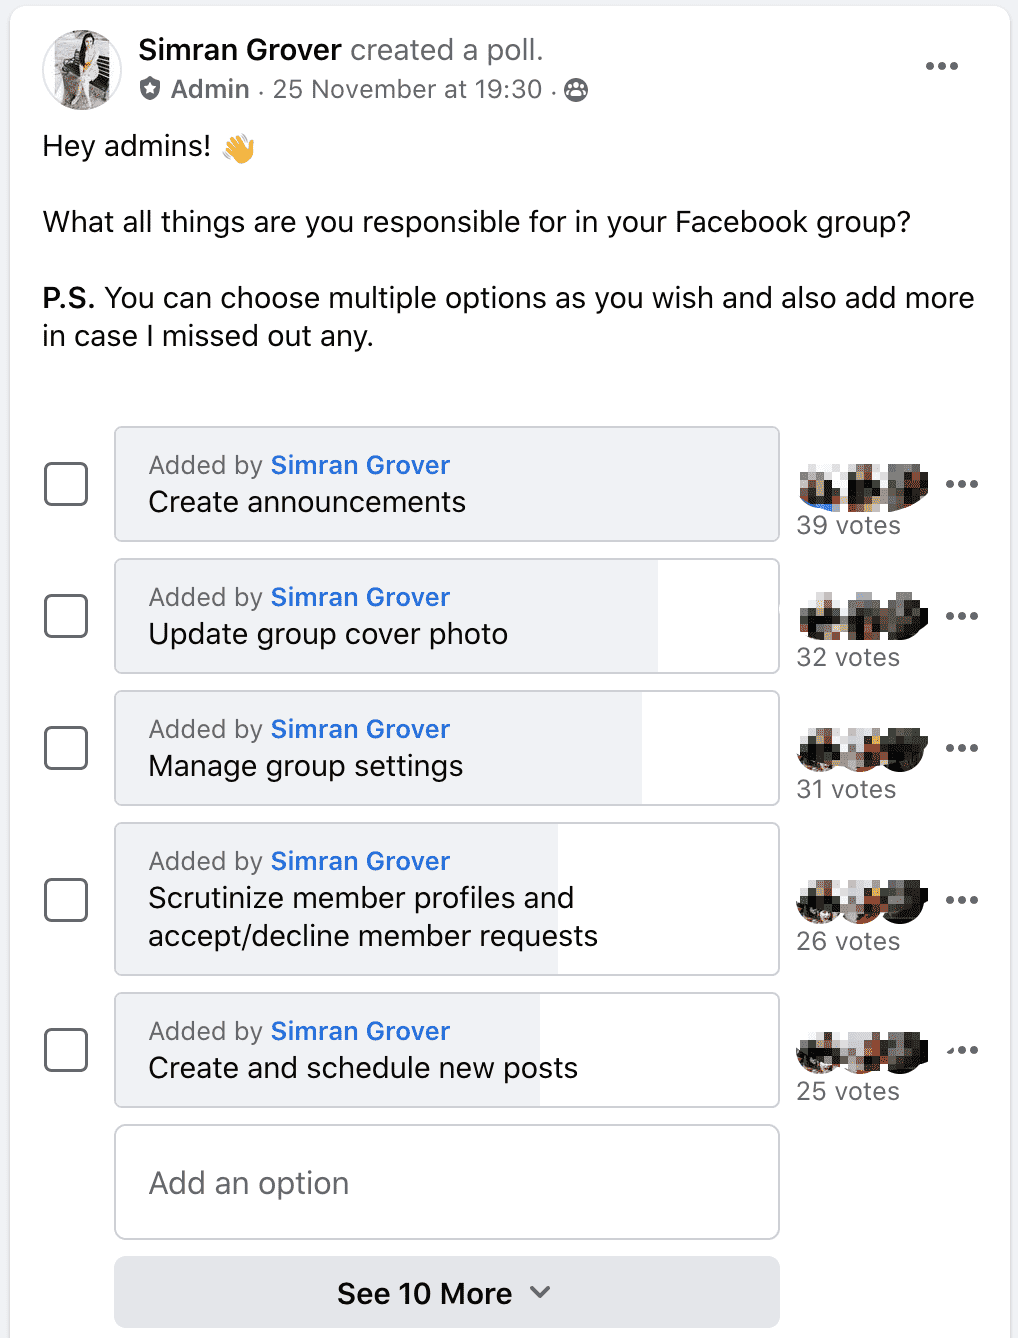 poll about Admin Vs Moderator Roles and Responsibilities